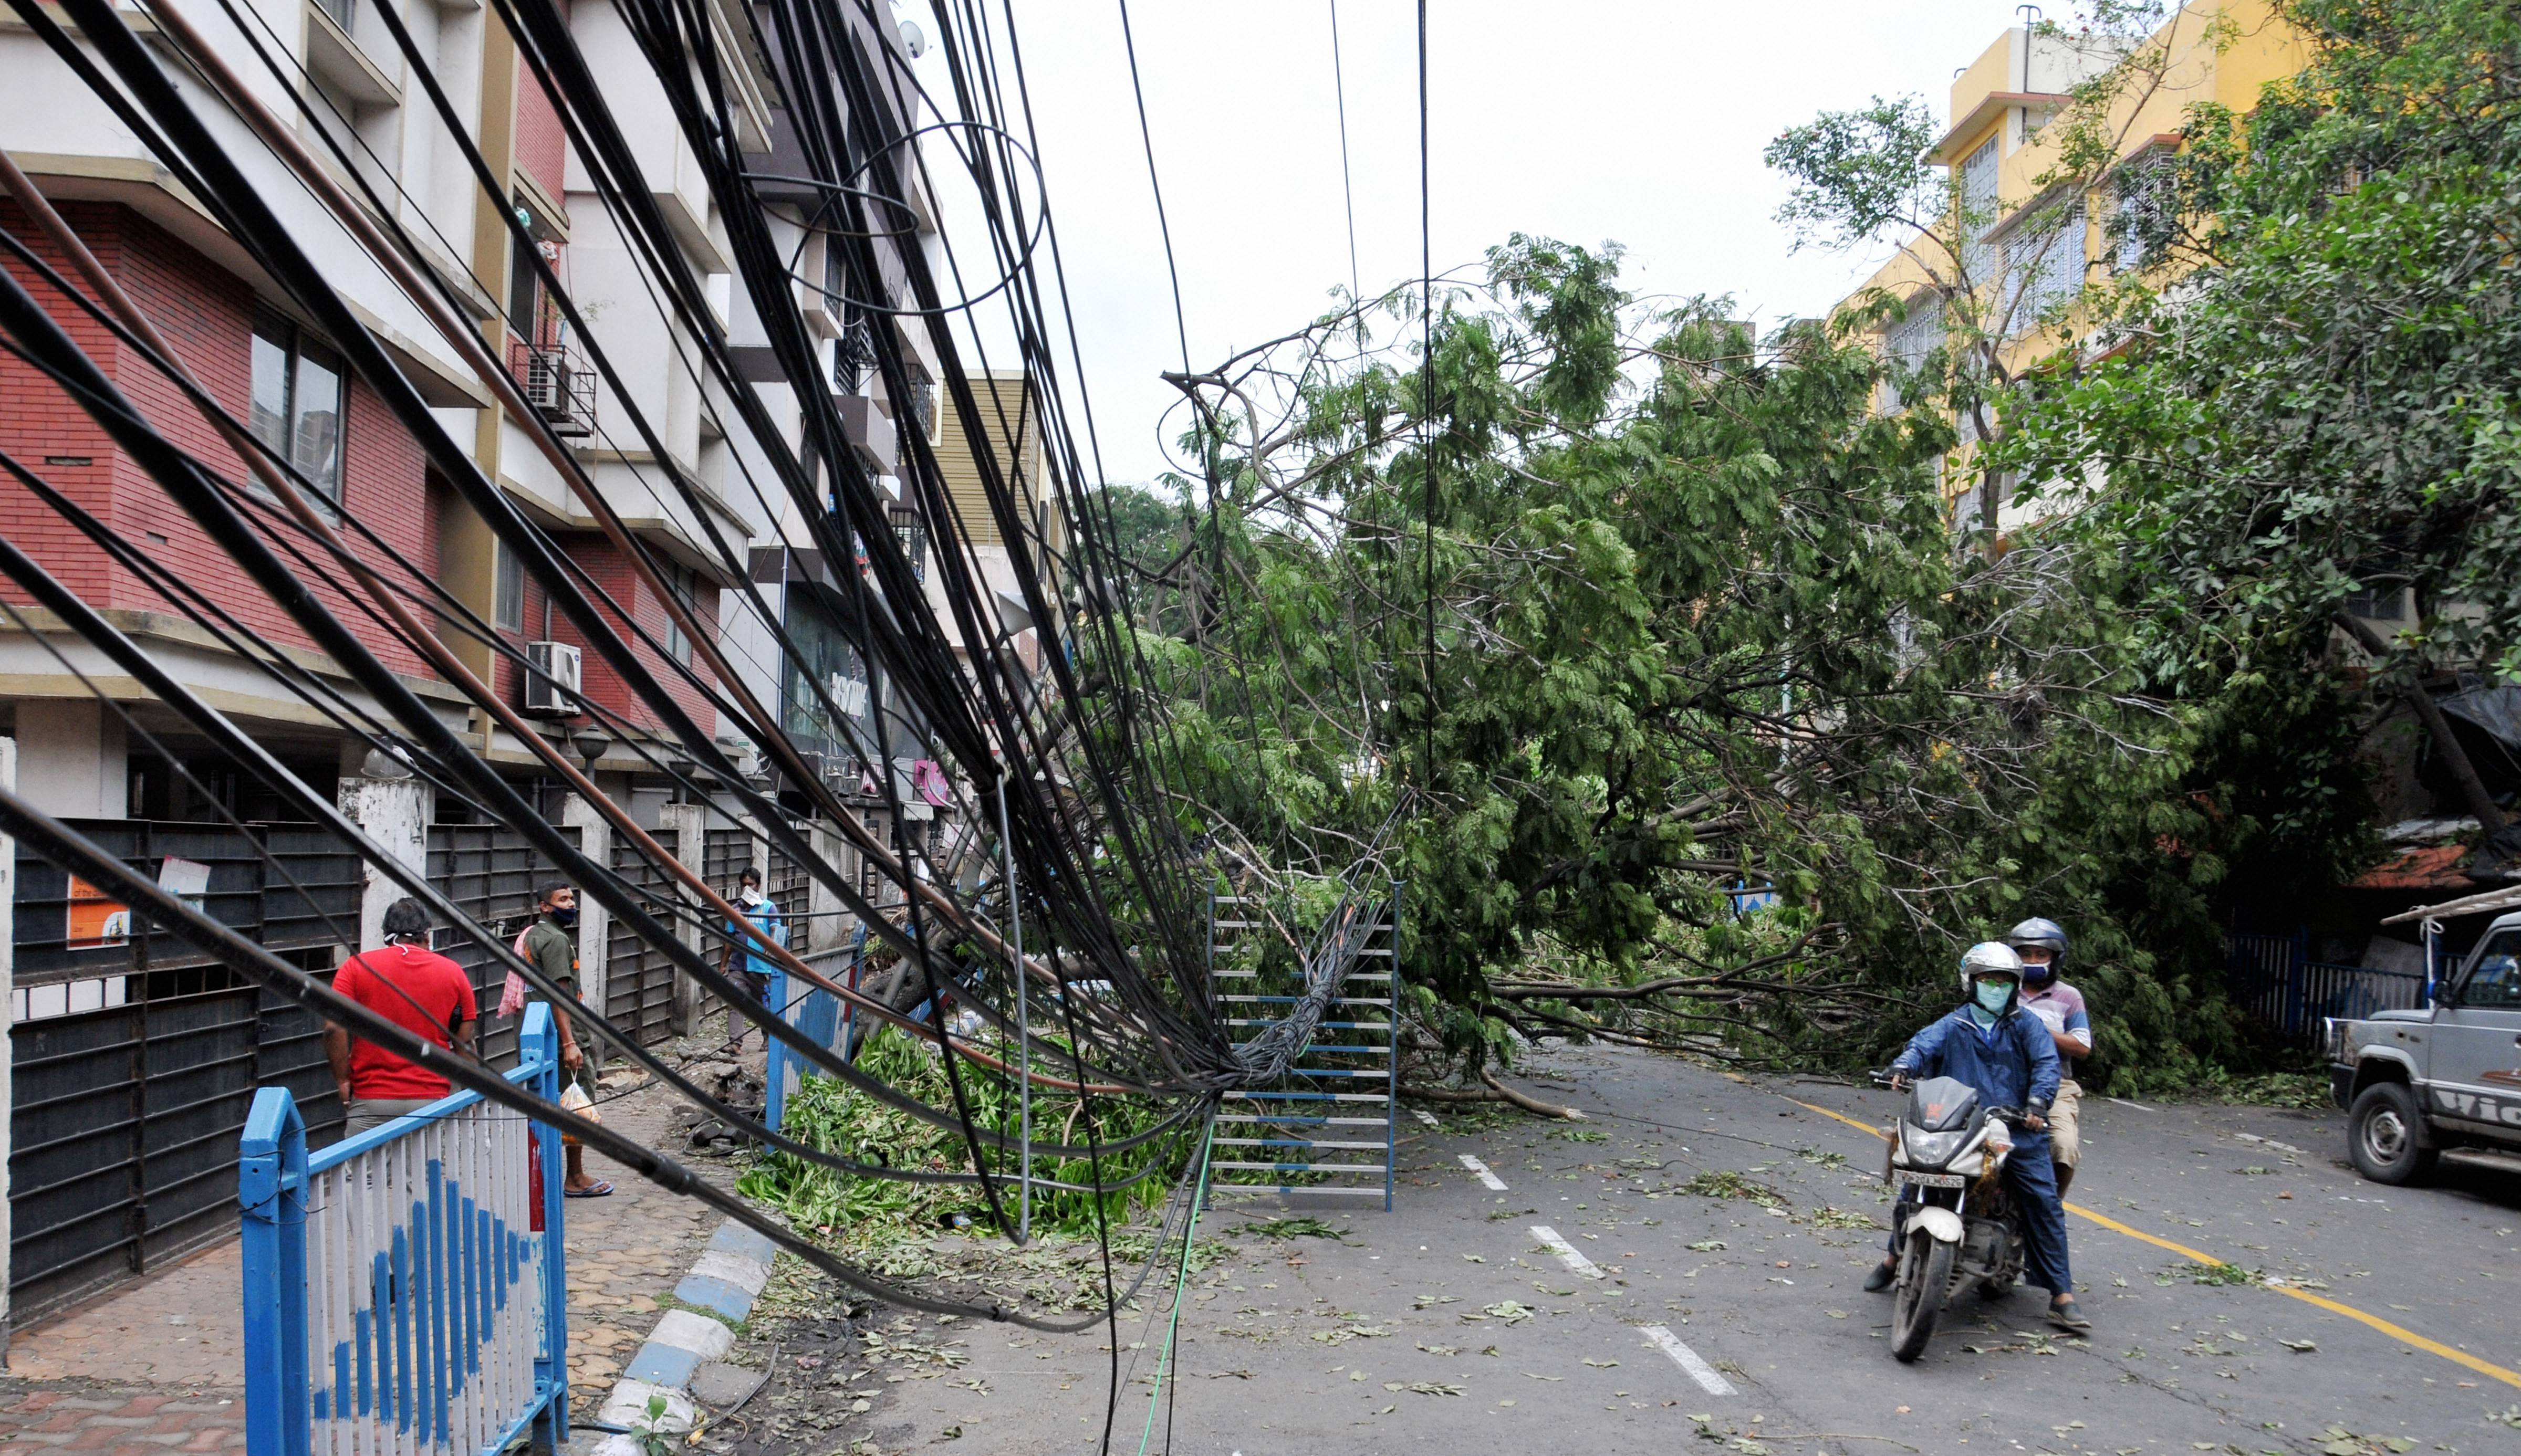 Damaged electric cables hang close to a street after trees fell on it, in the aftermath of Cyclone Amphan, in Kolkata, Friday, May 22, 2020